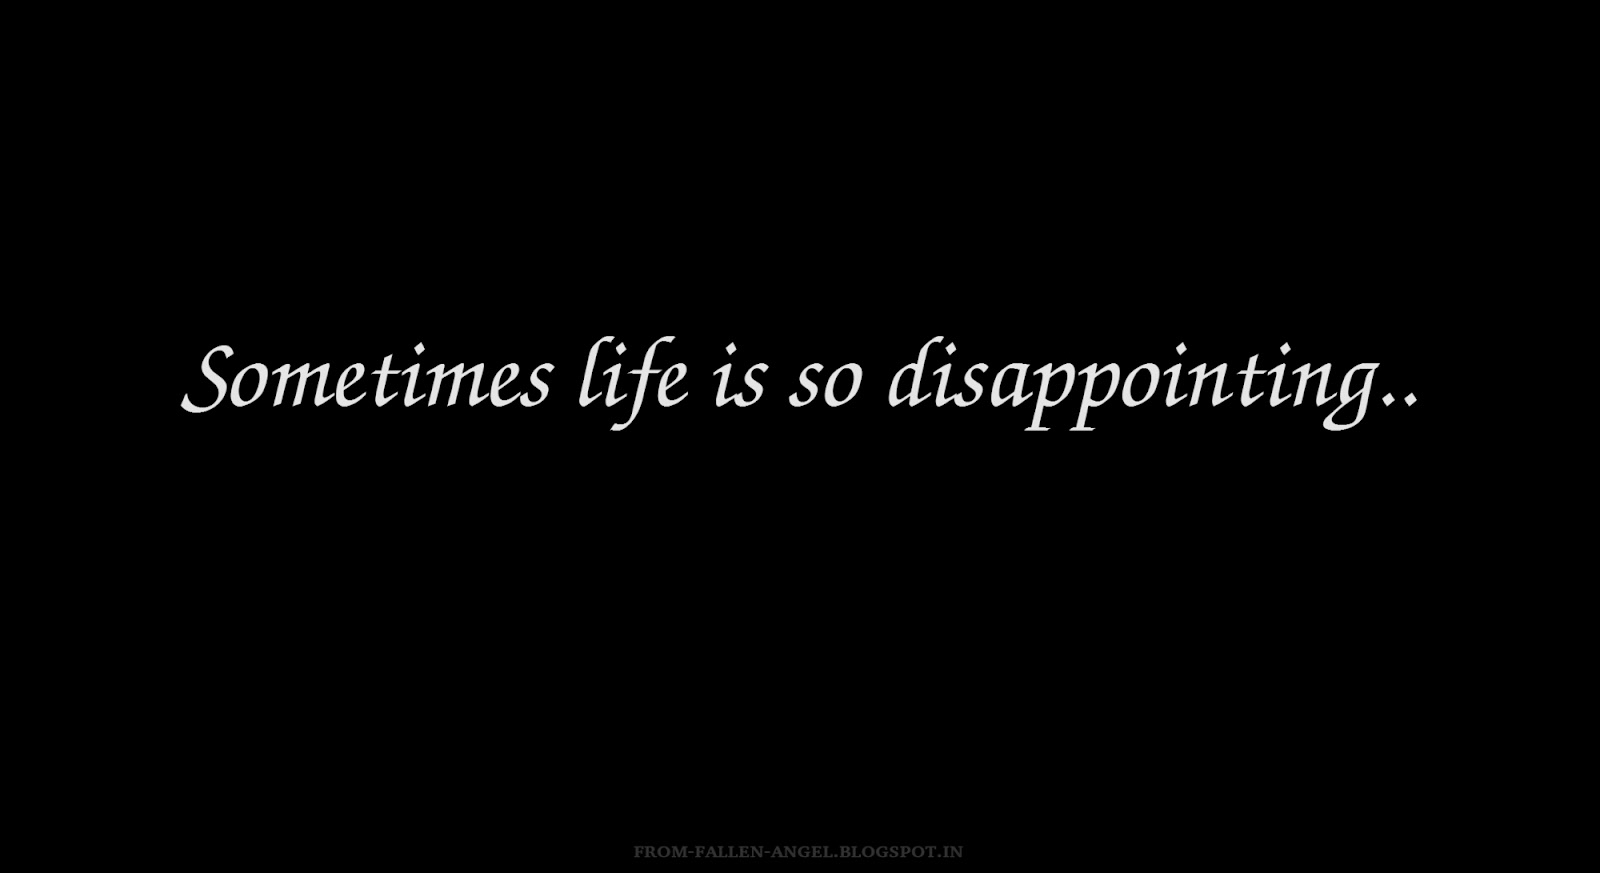 Sometimes life is so disappointing..